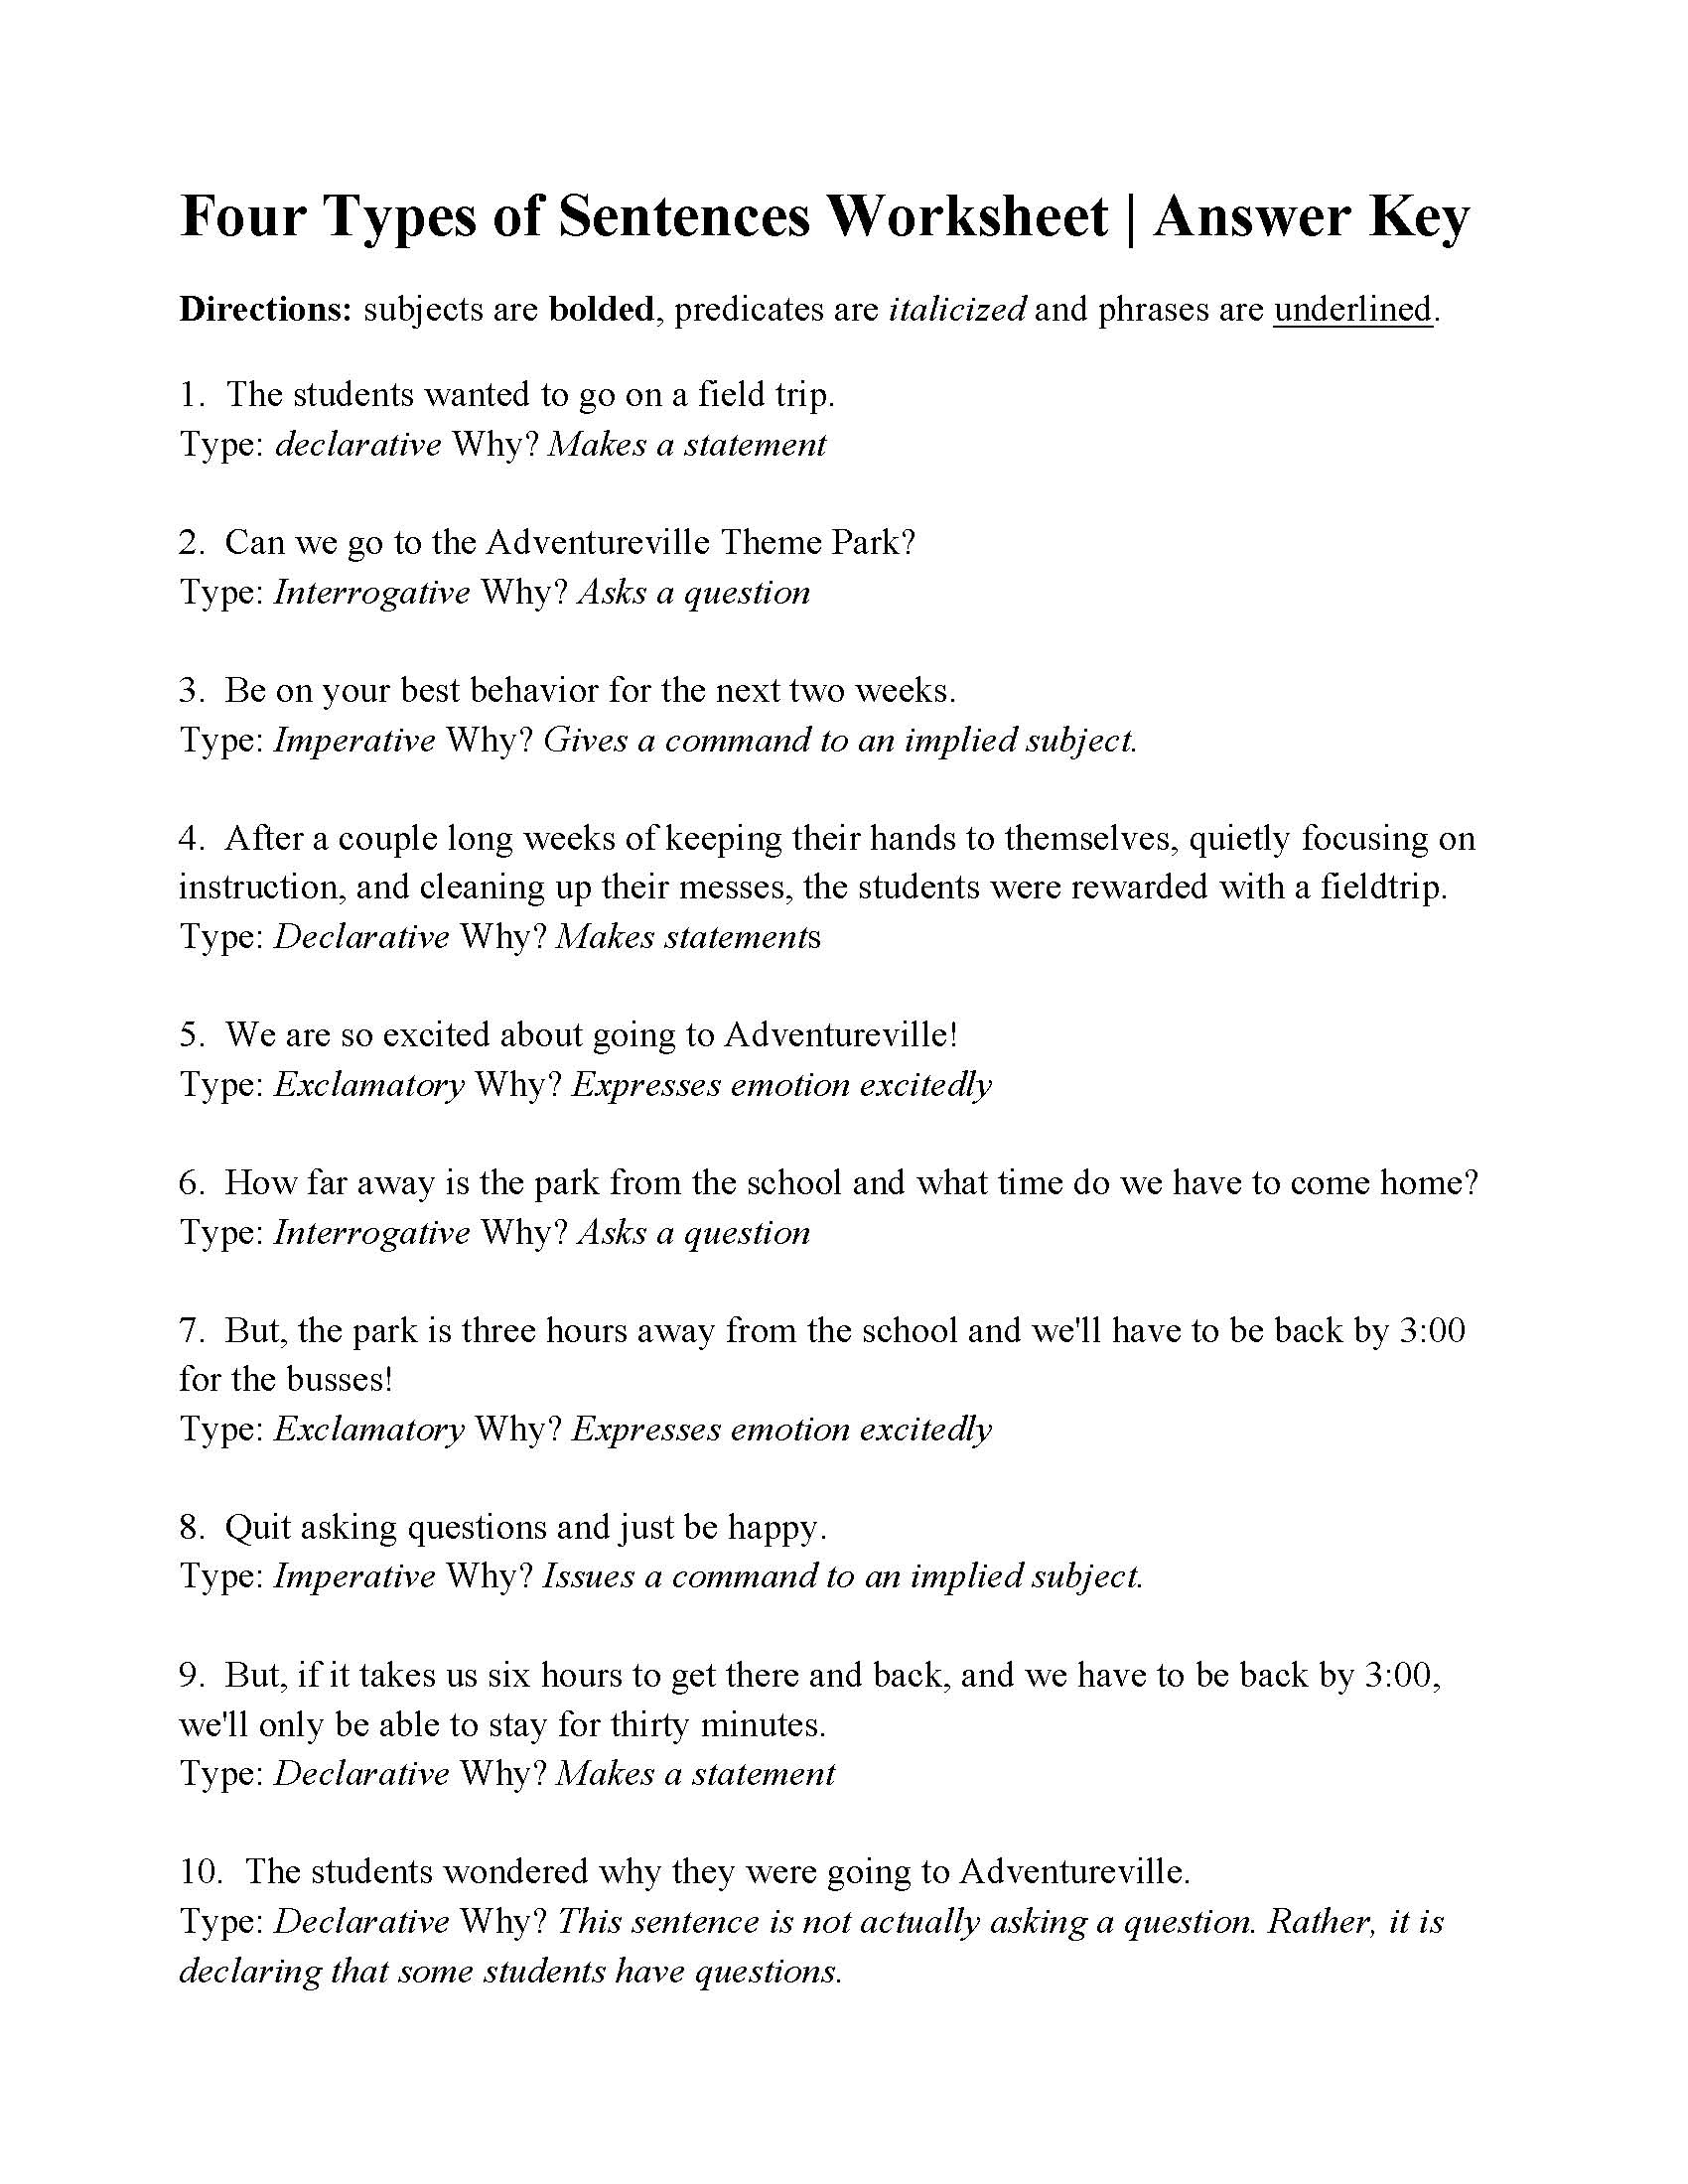 Worksheets Imperative And Exclamatory Sentences Worksheet four types of sentences worksheet answers this is the answer key for worksheet